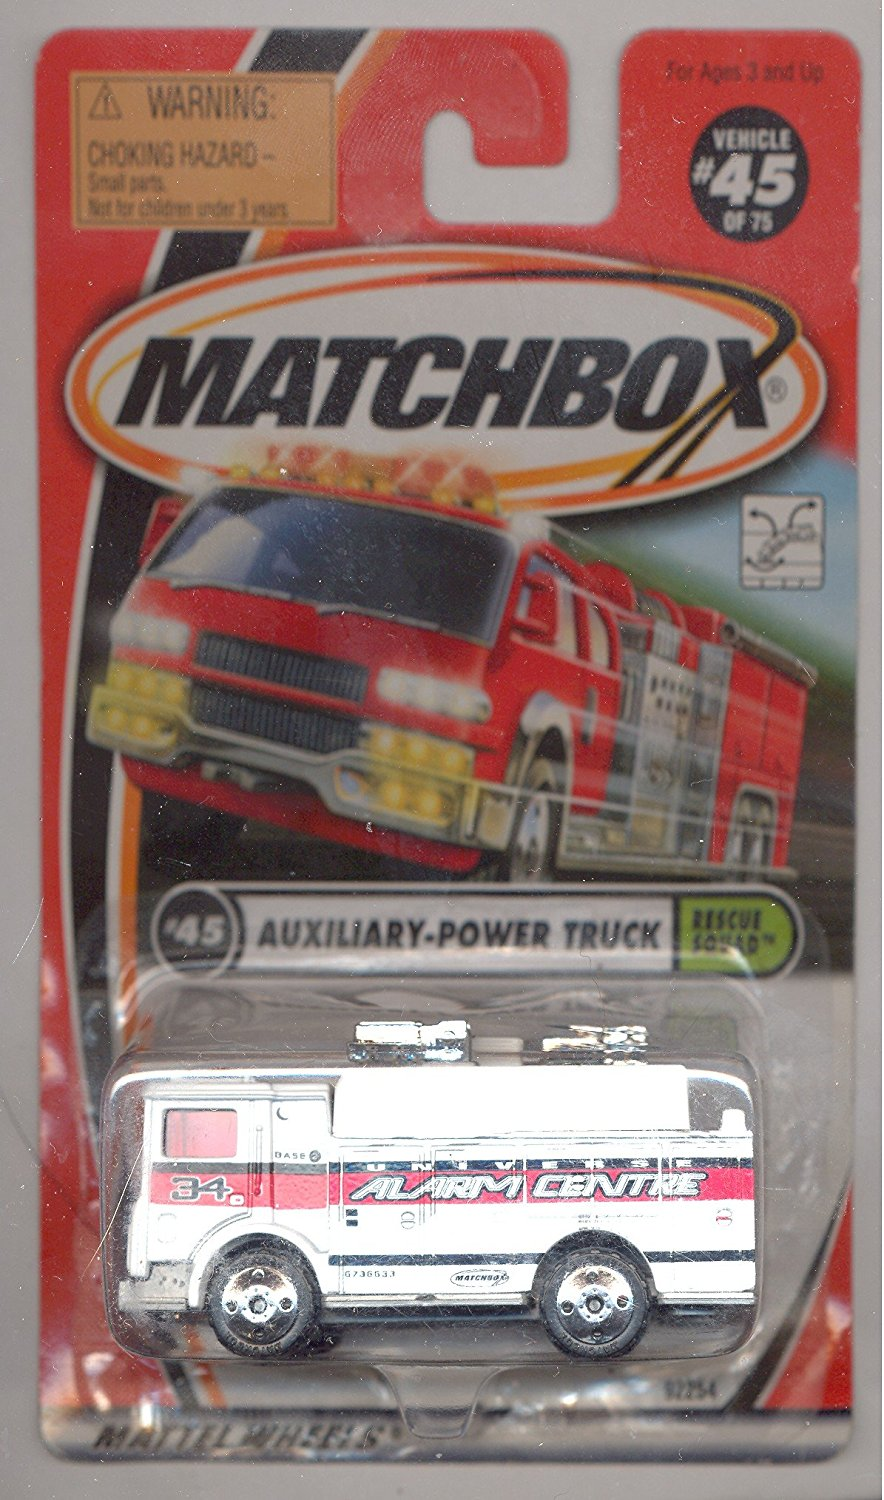 1999-45 75 Rescue Squad WHITE Auxiliary-Power Truck 1:64 Scale, 1:64 Scale By Matchbox by